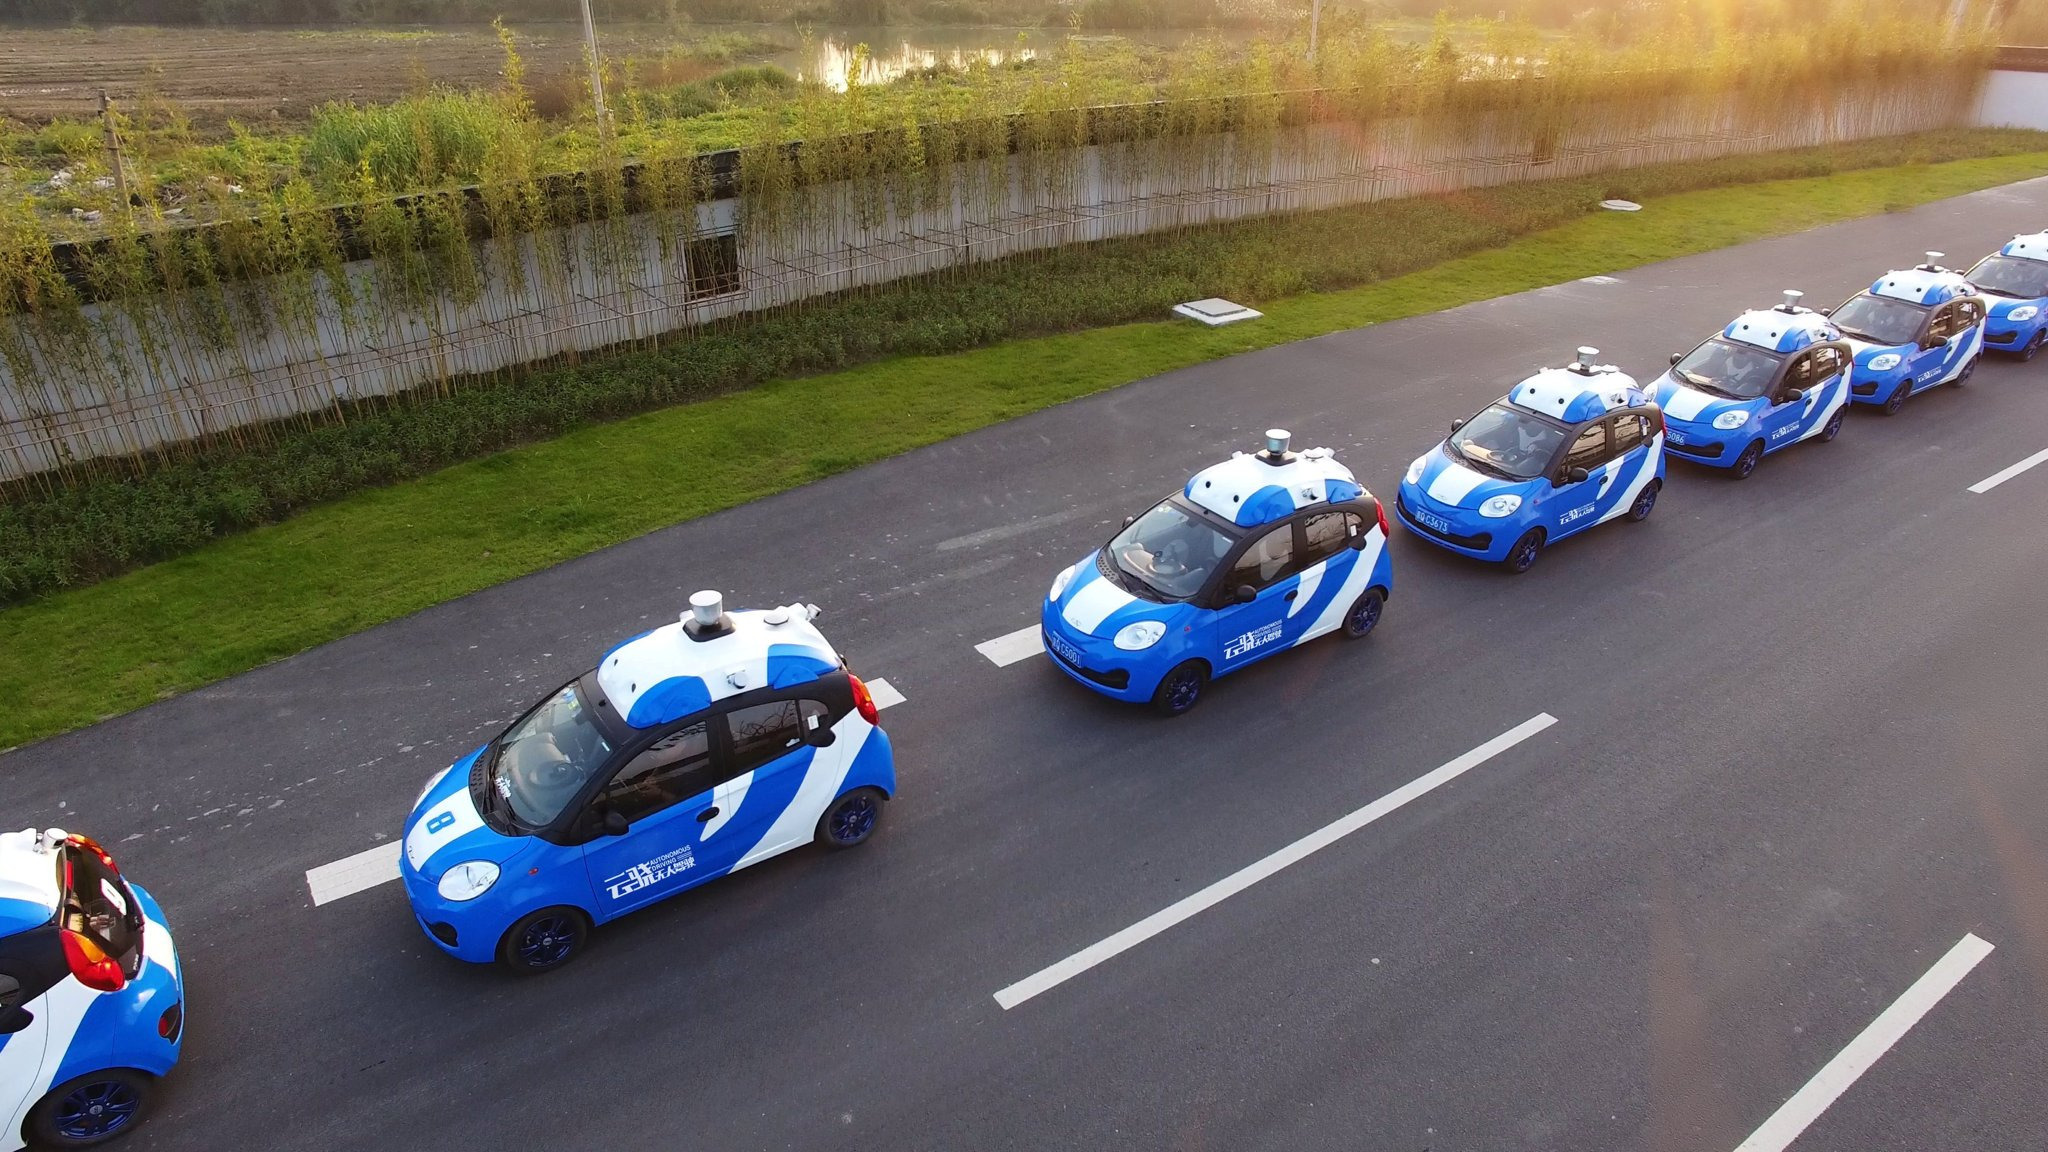 Baidu launches public road tests of autonomous cars in China